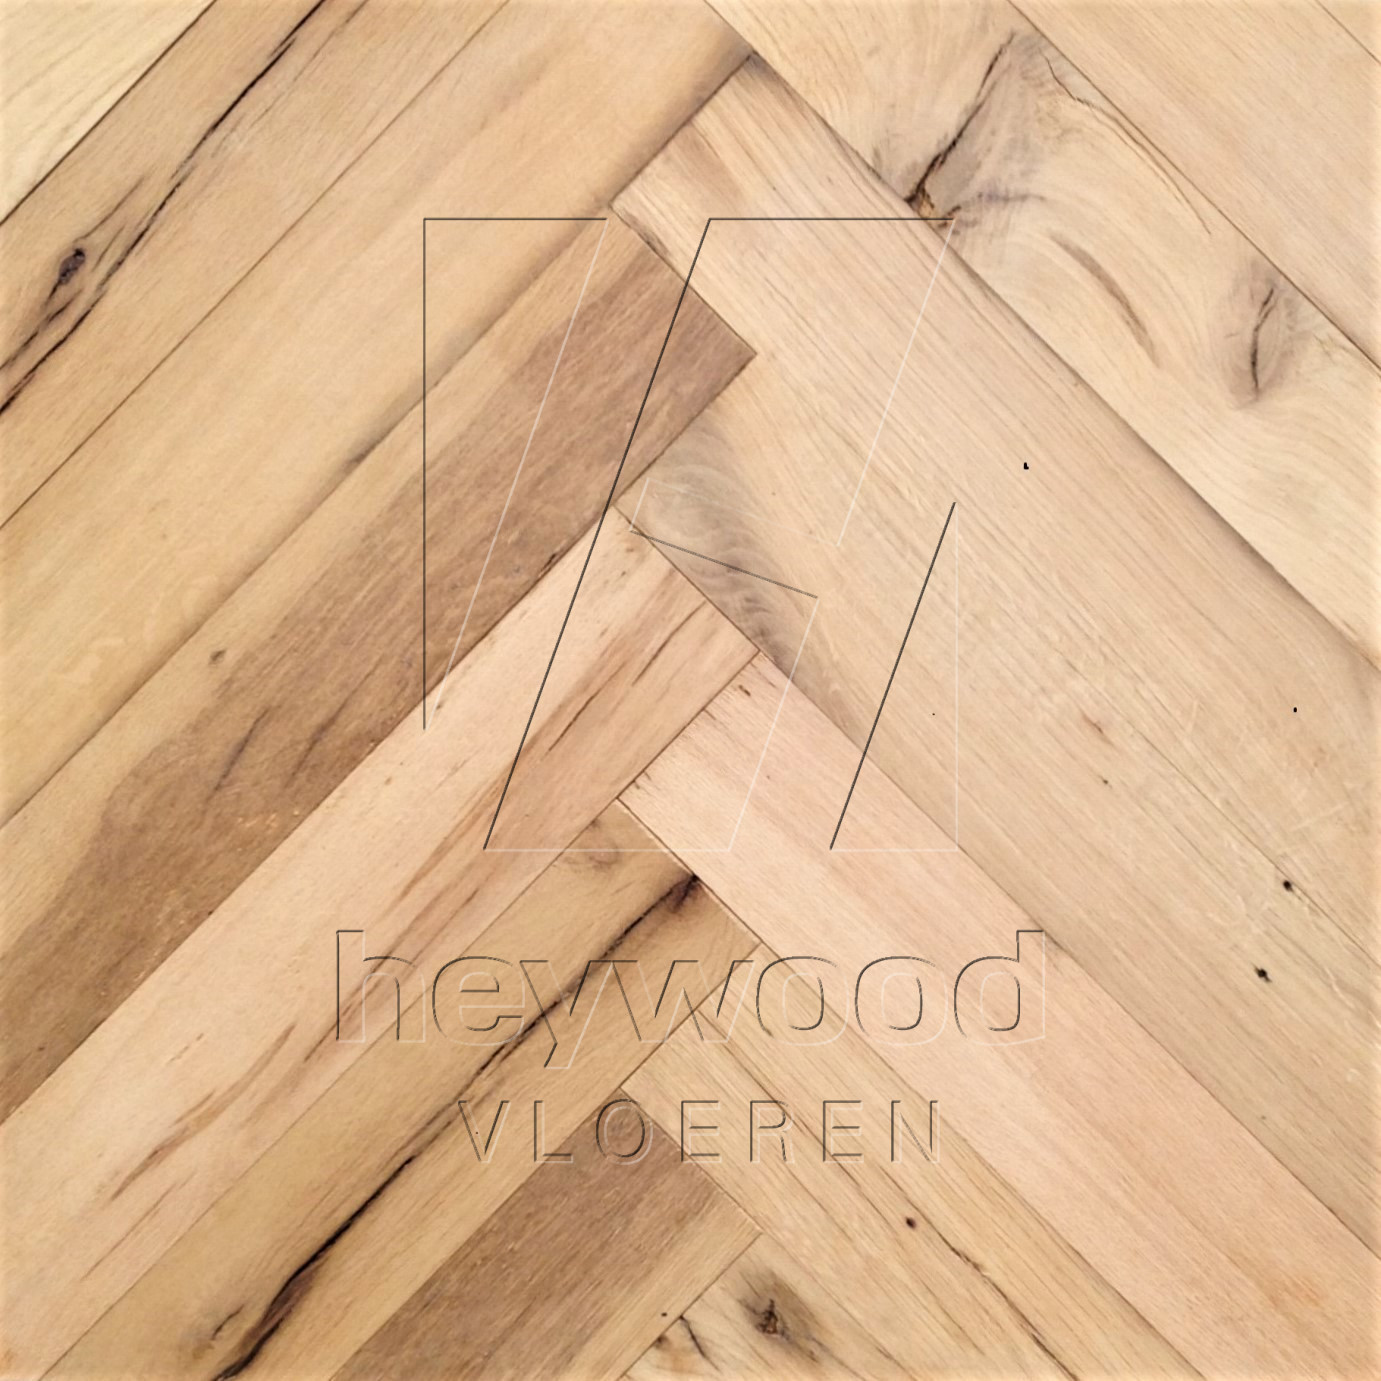 Reclaimed Herringbone 'Stellenbosch' (unoiled) in Pattern & Panels (Outsides / Insides) of Old Reclaimed Wood